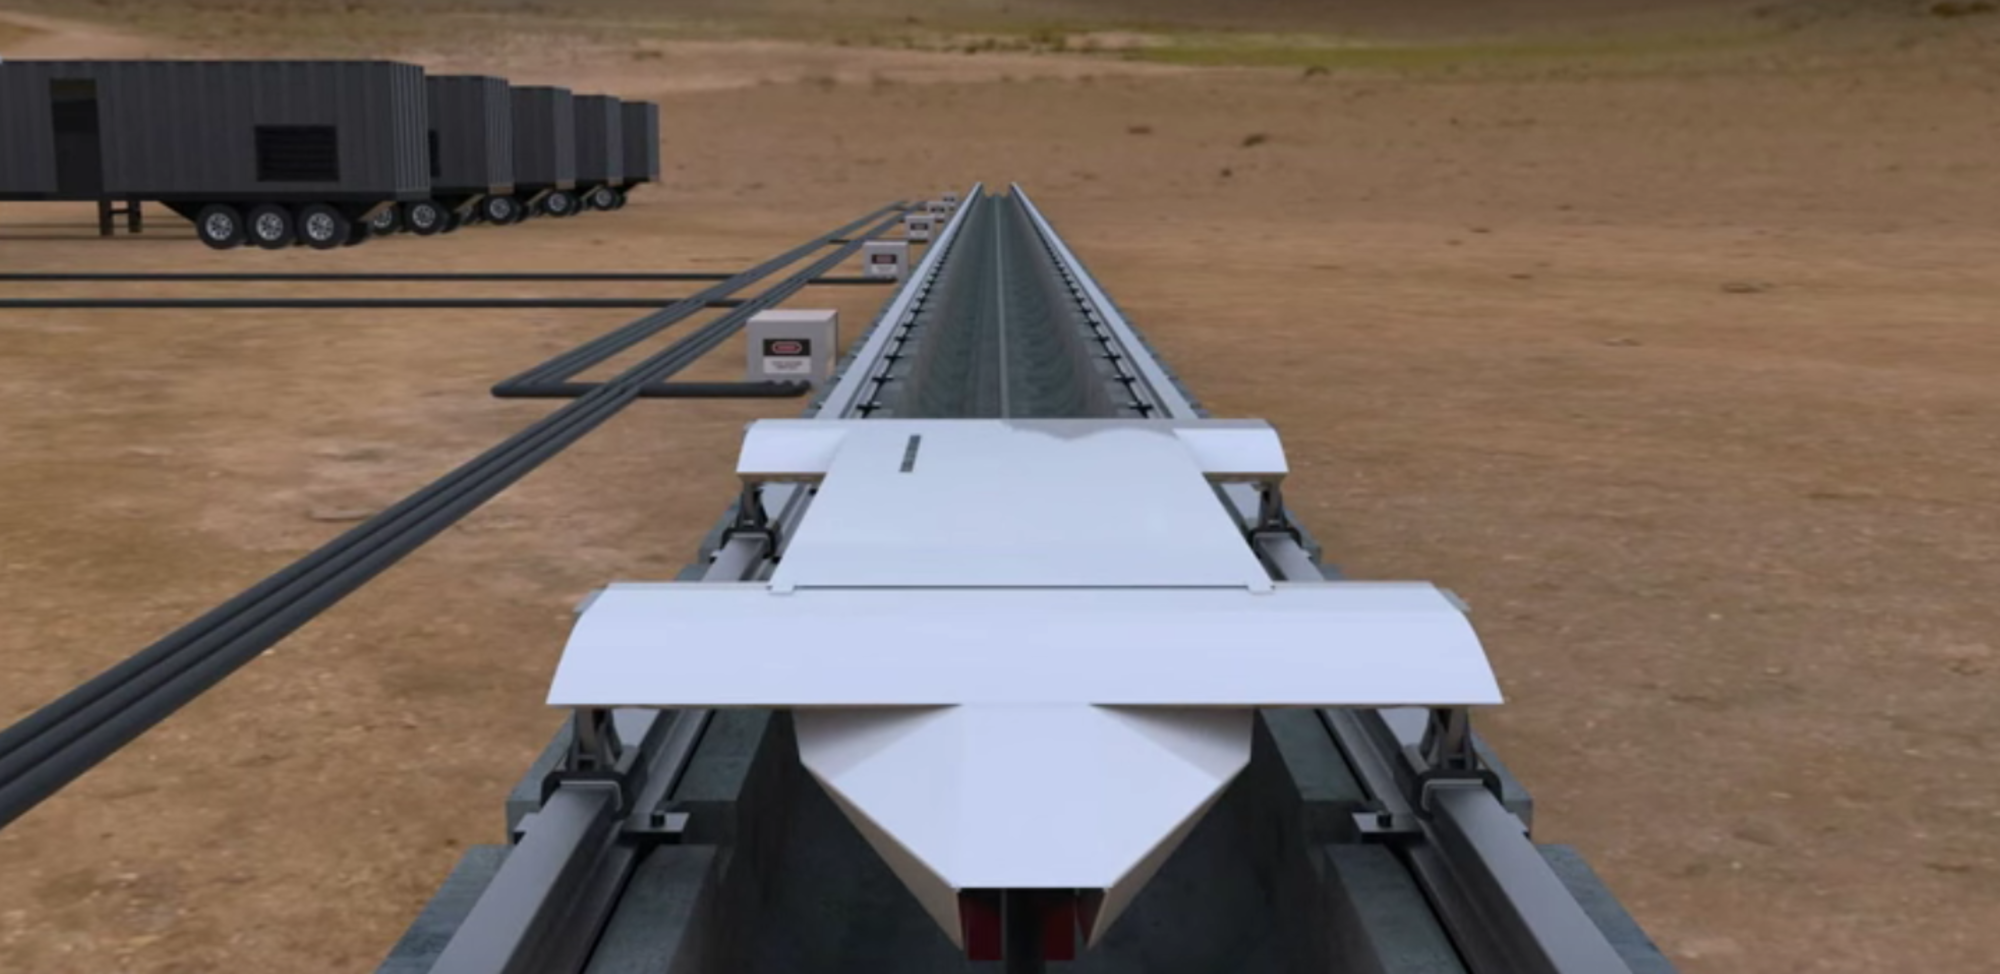 Hyperloop Technologies announced that it will build a test